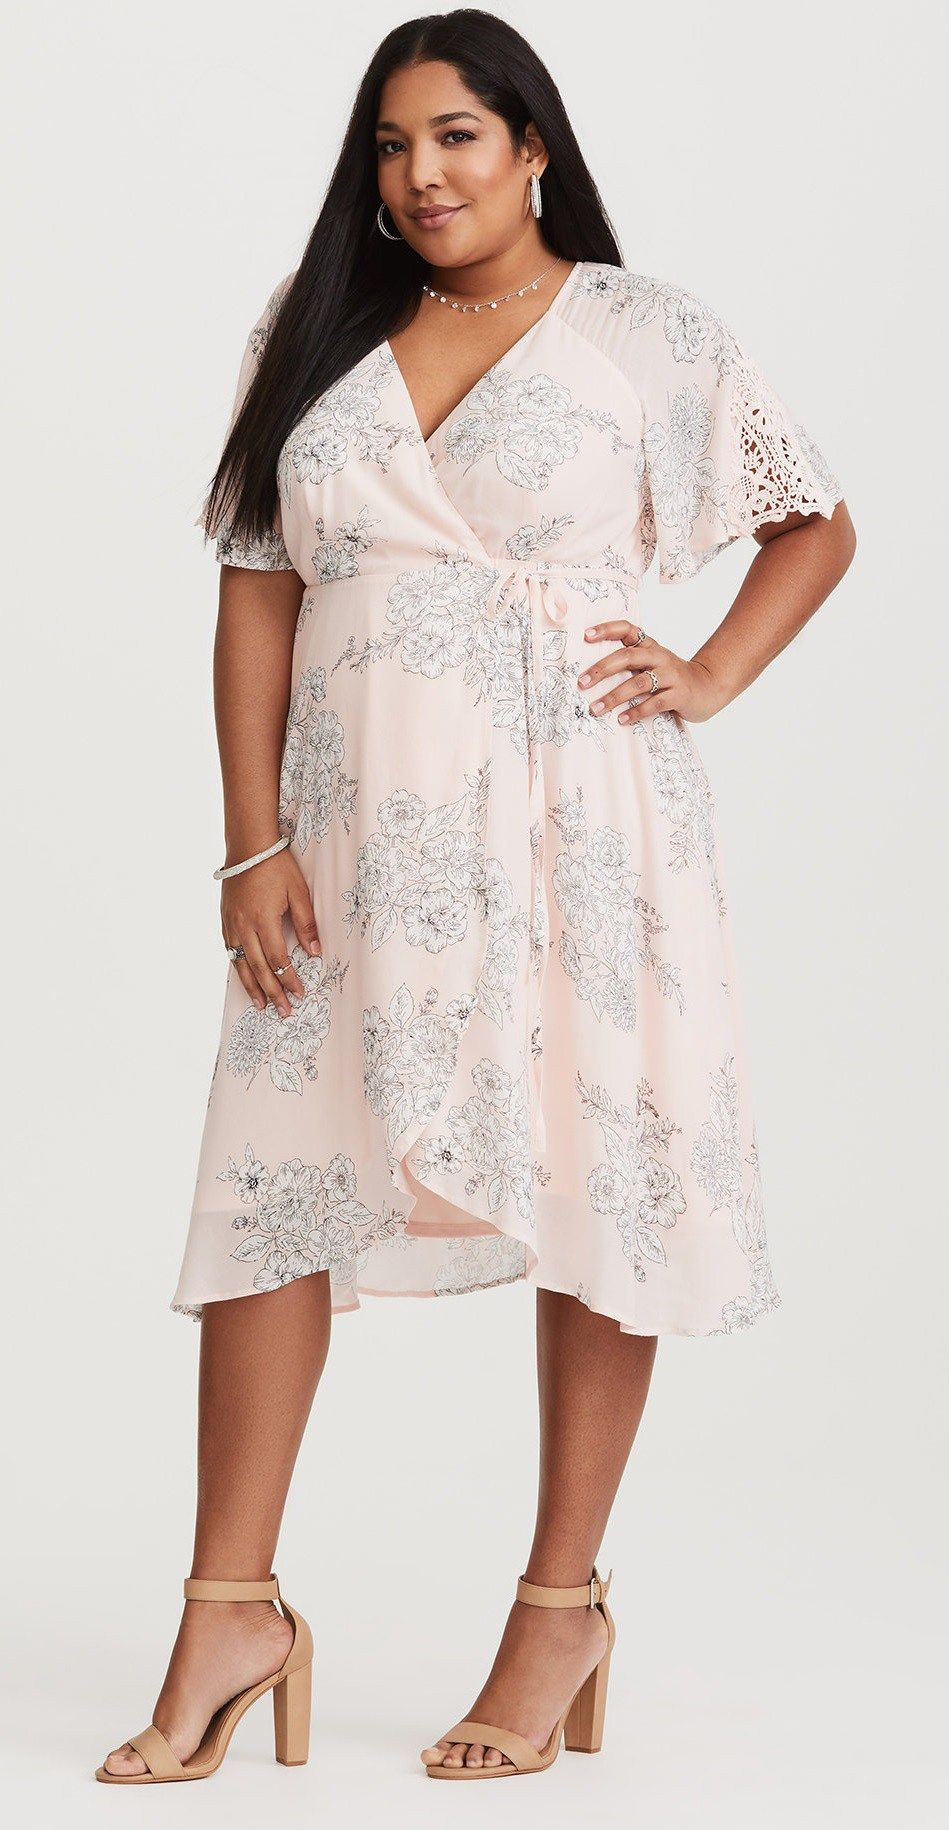 40 Plus Size Spring Wedding Guest Dresses With Sleeves Alexa Webb Wrap Dress Floral Spring Wedding Guest Dress Guest Dresses